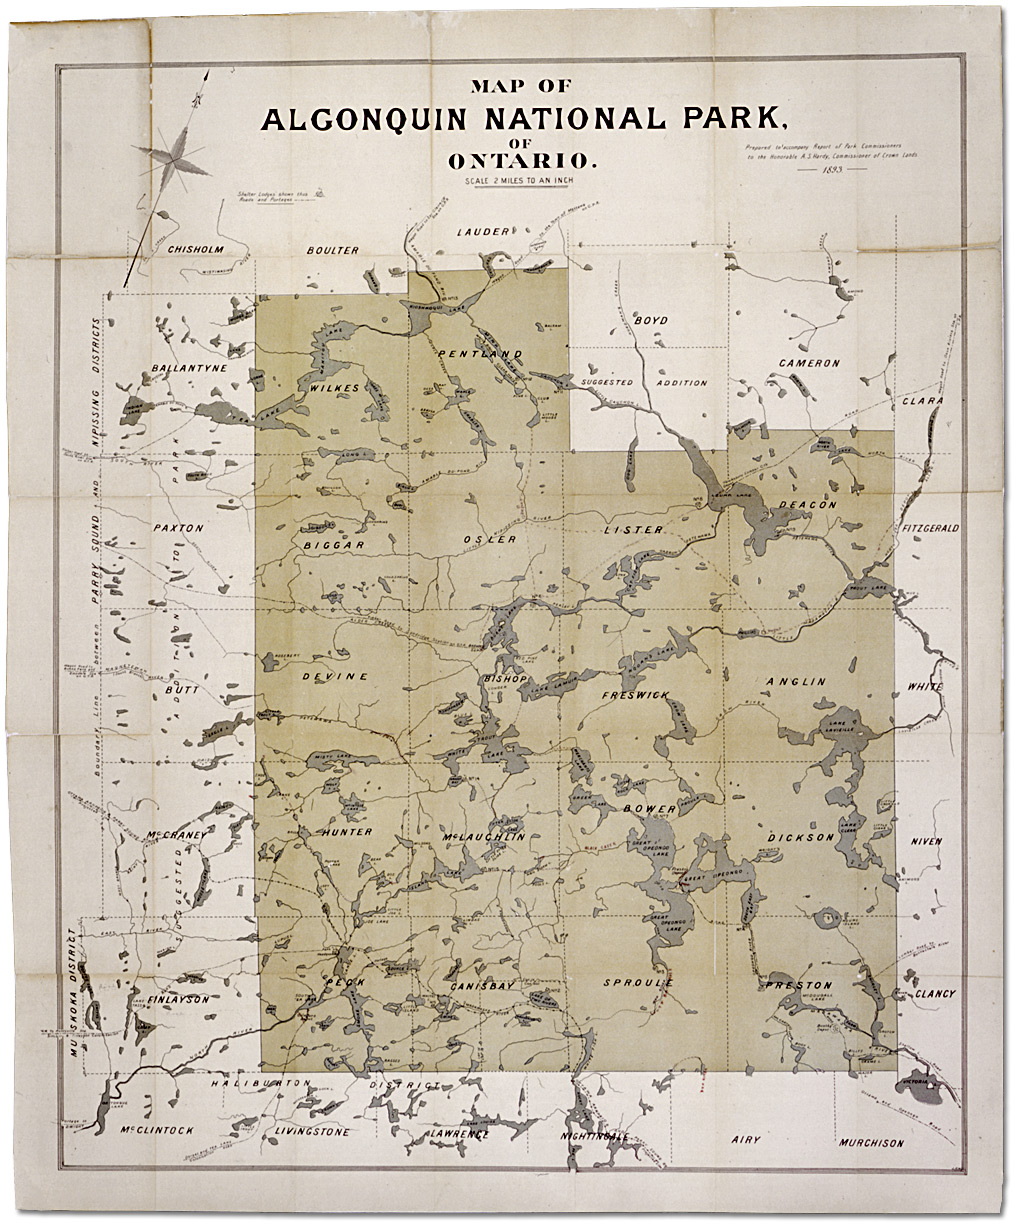 Map of Algonquin National Park of Ontario